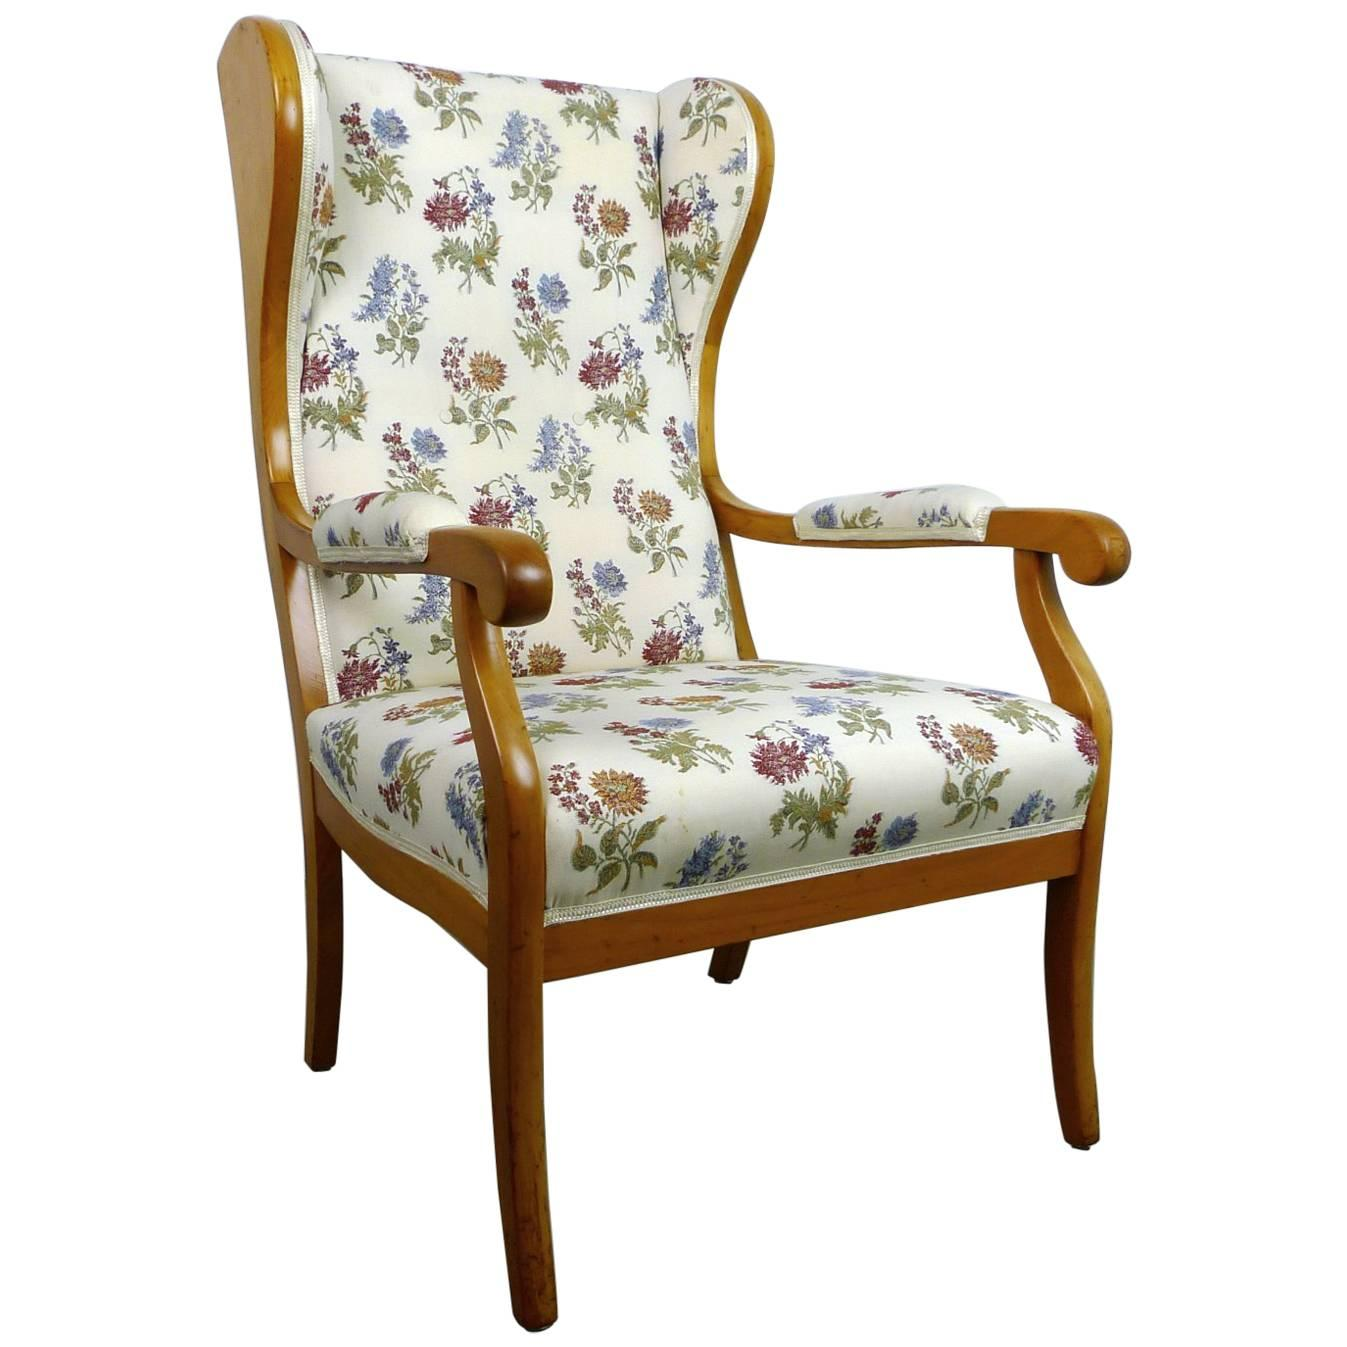 Antique Wingback Chair in Cherry Germany 1900 For Sale  sc 1 st  1stDibs & Antique Wingback Chair in Cherry Germany 1900 For Sale at 1stdibs